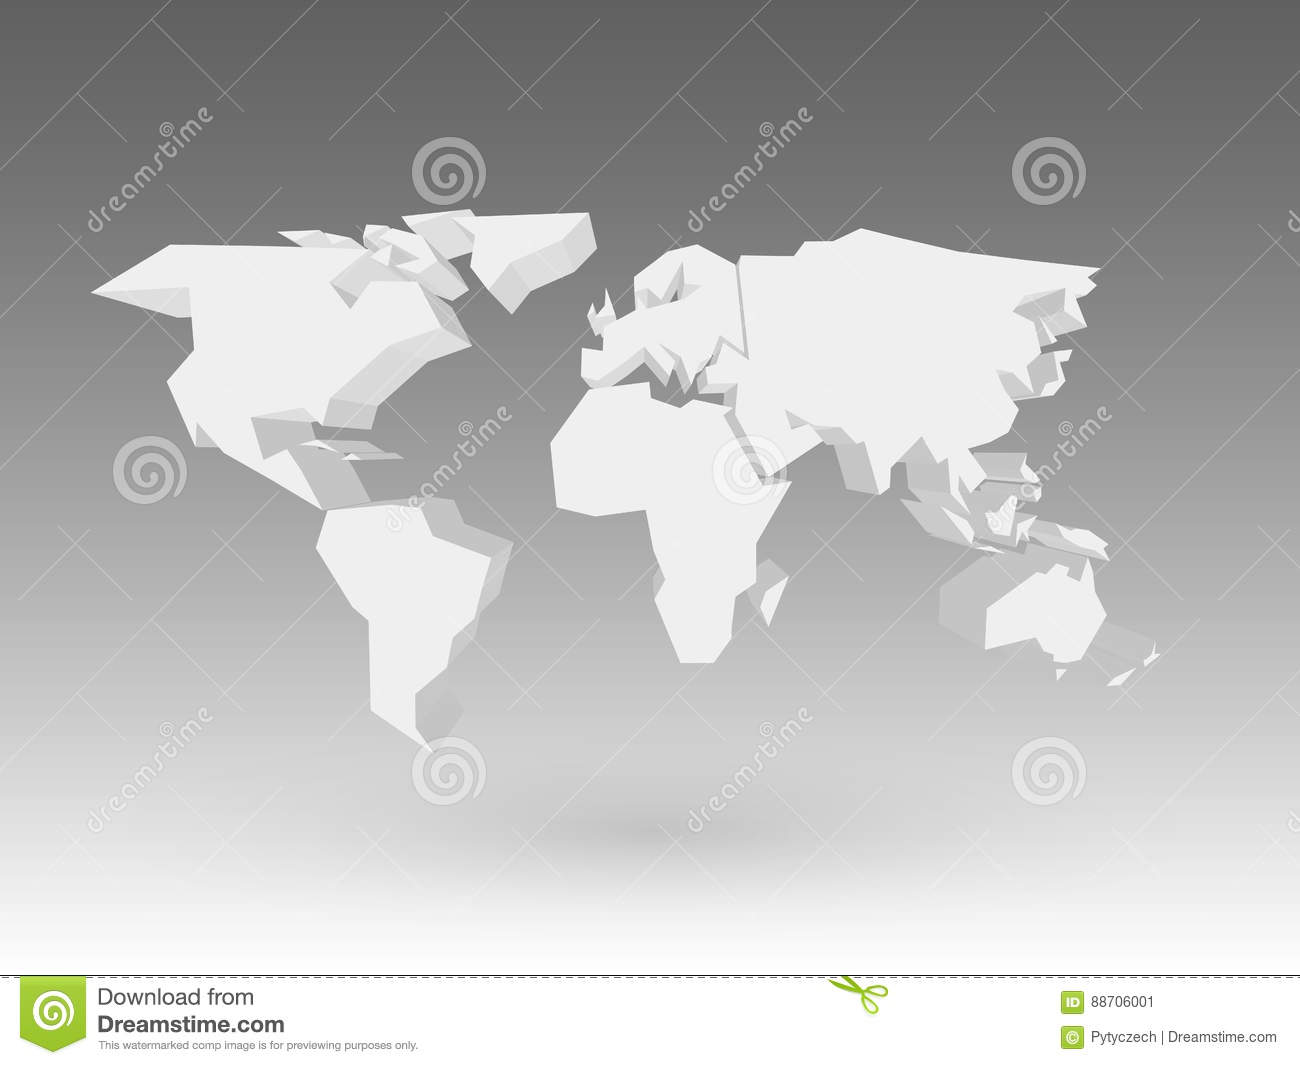 White 3d world map with dropped shadow on grey background eps10 download white 3d world map with dropped shadow on grey background eps10 vector illustration stock gumiabroncs Image collections